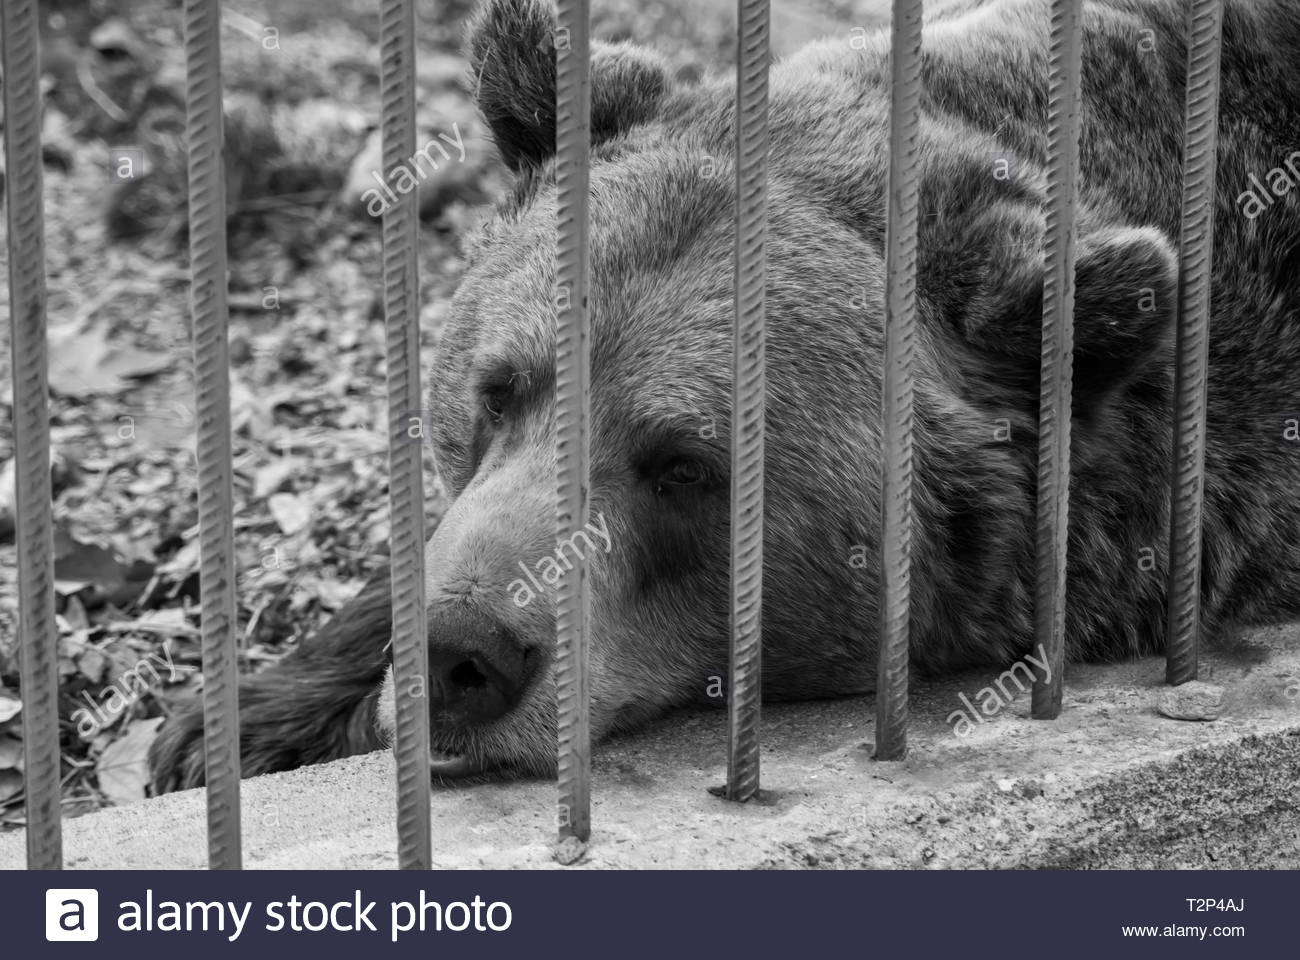 Animal Rights Black and White Stock Photos & Images - Alamy